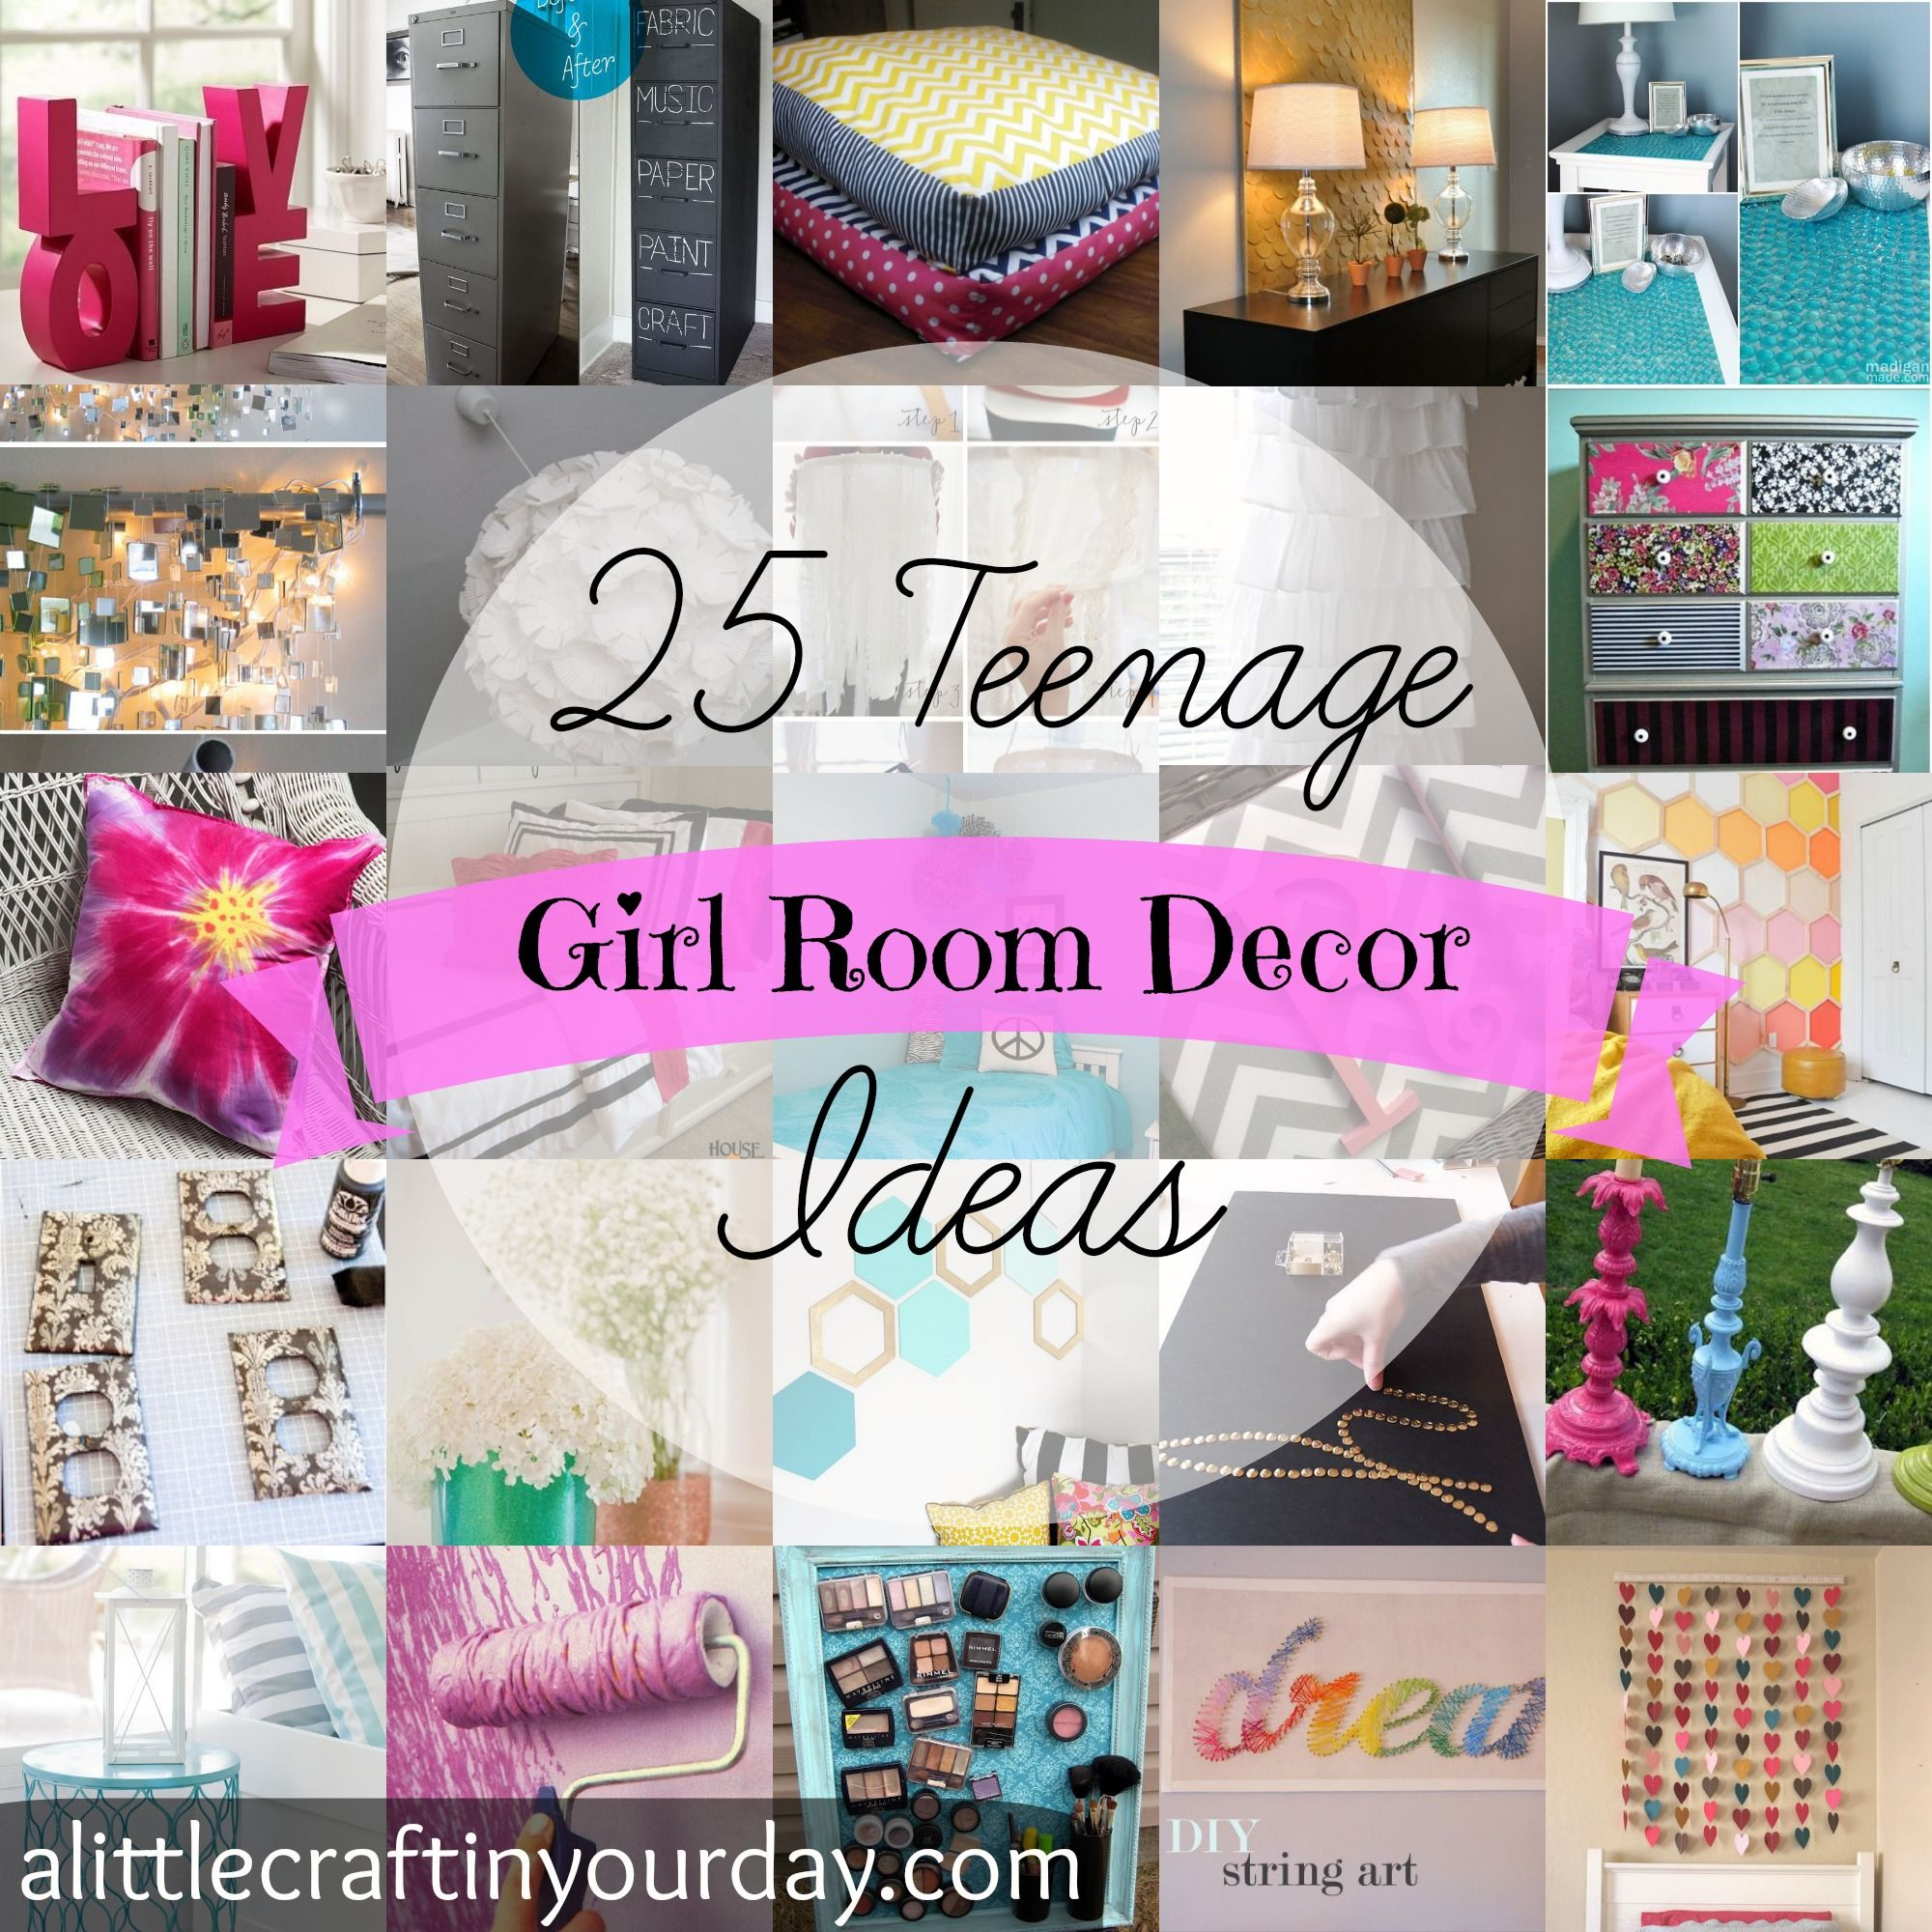 25 Teenage Girl Room Decor Ideas – A Little Craft In Your Day